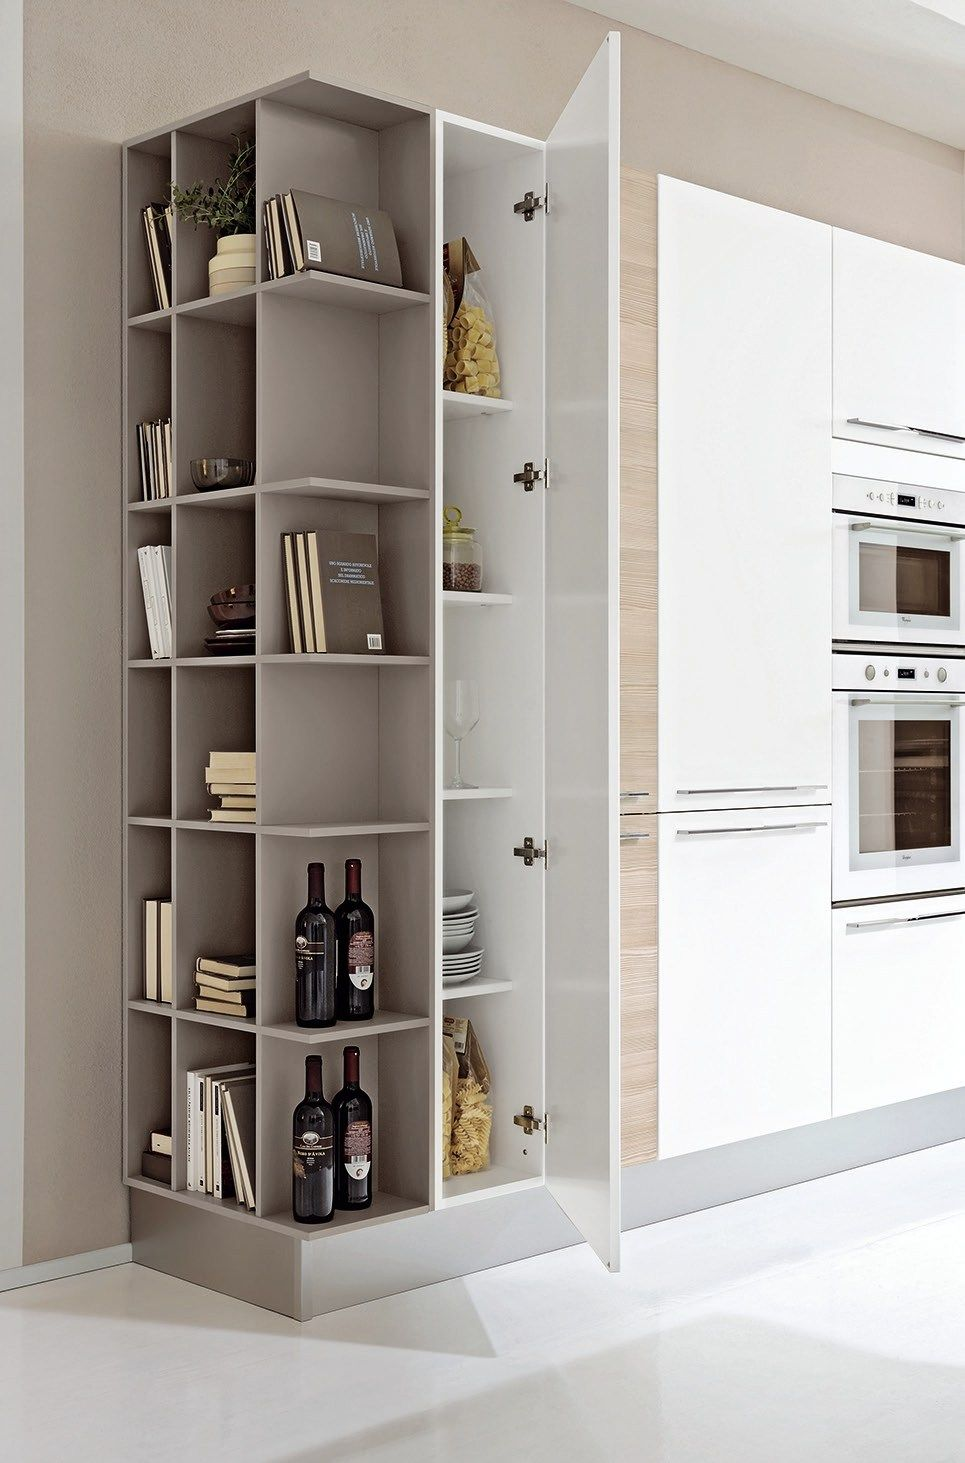 SWING Cucina componibile by LUBE INDUSTRIES S.R.L. | Interior ...